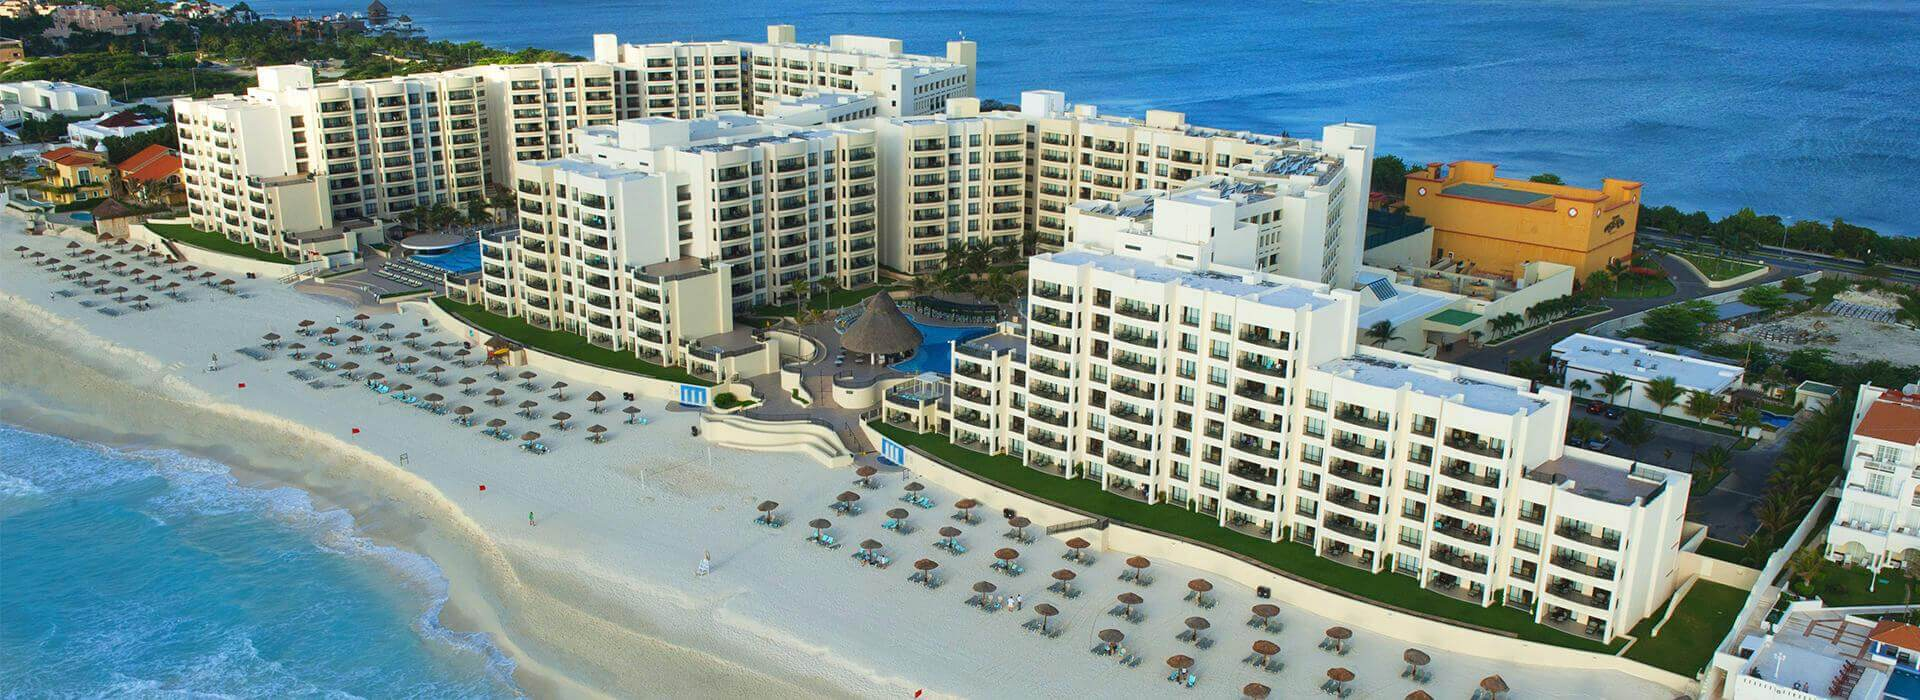 the royal sands all inclusive resort spa air view